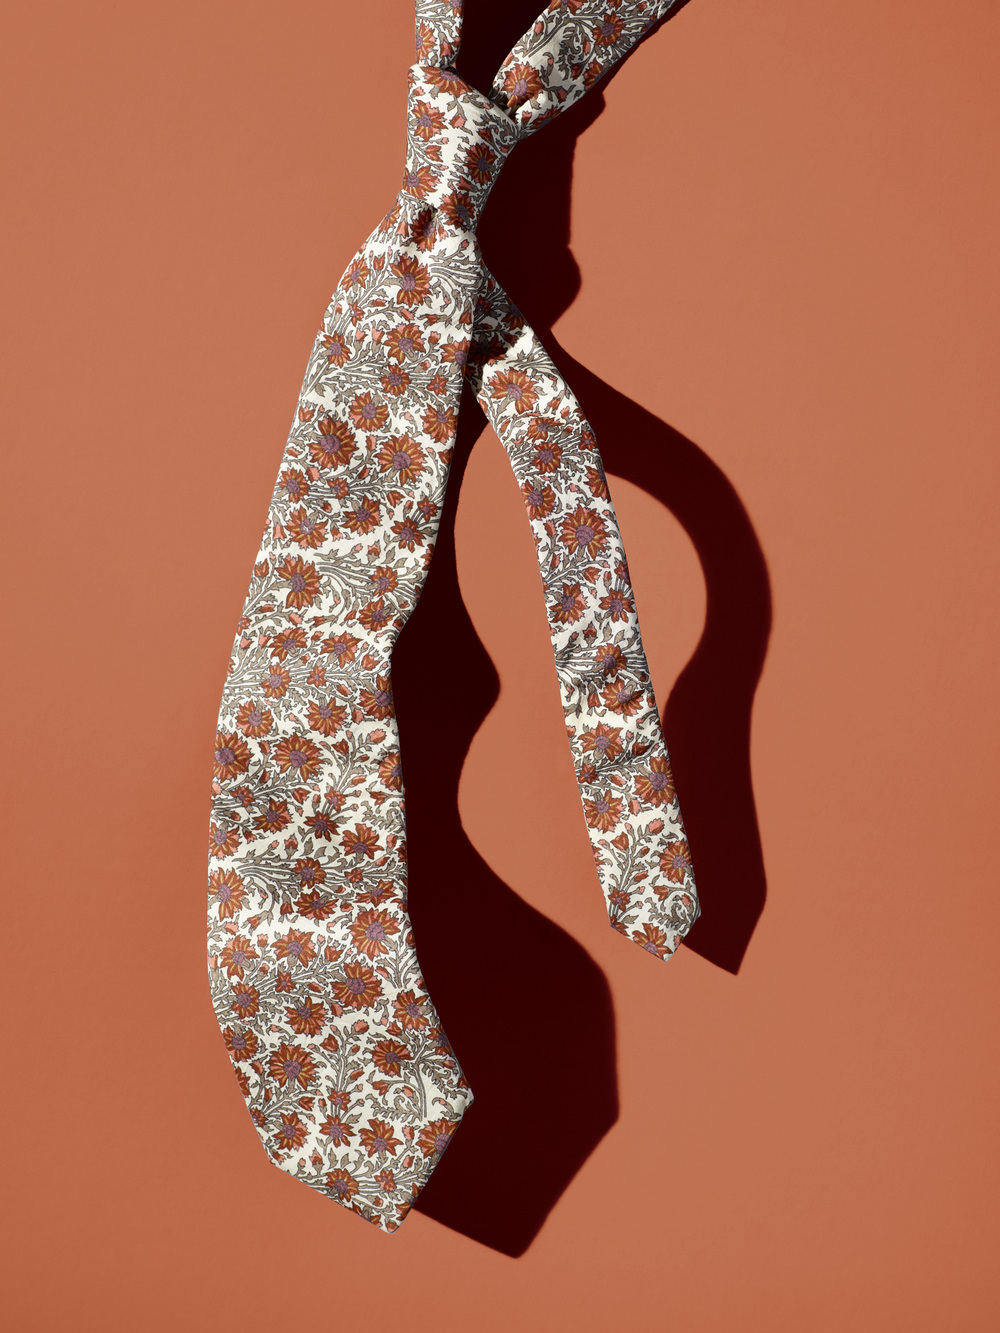 LibertyTies_SHOT_02_053.jpg